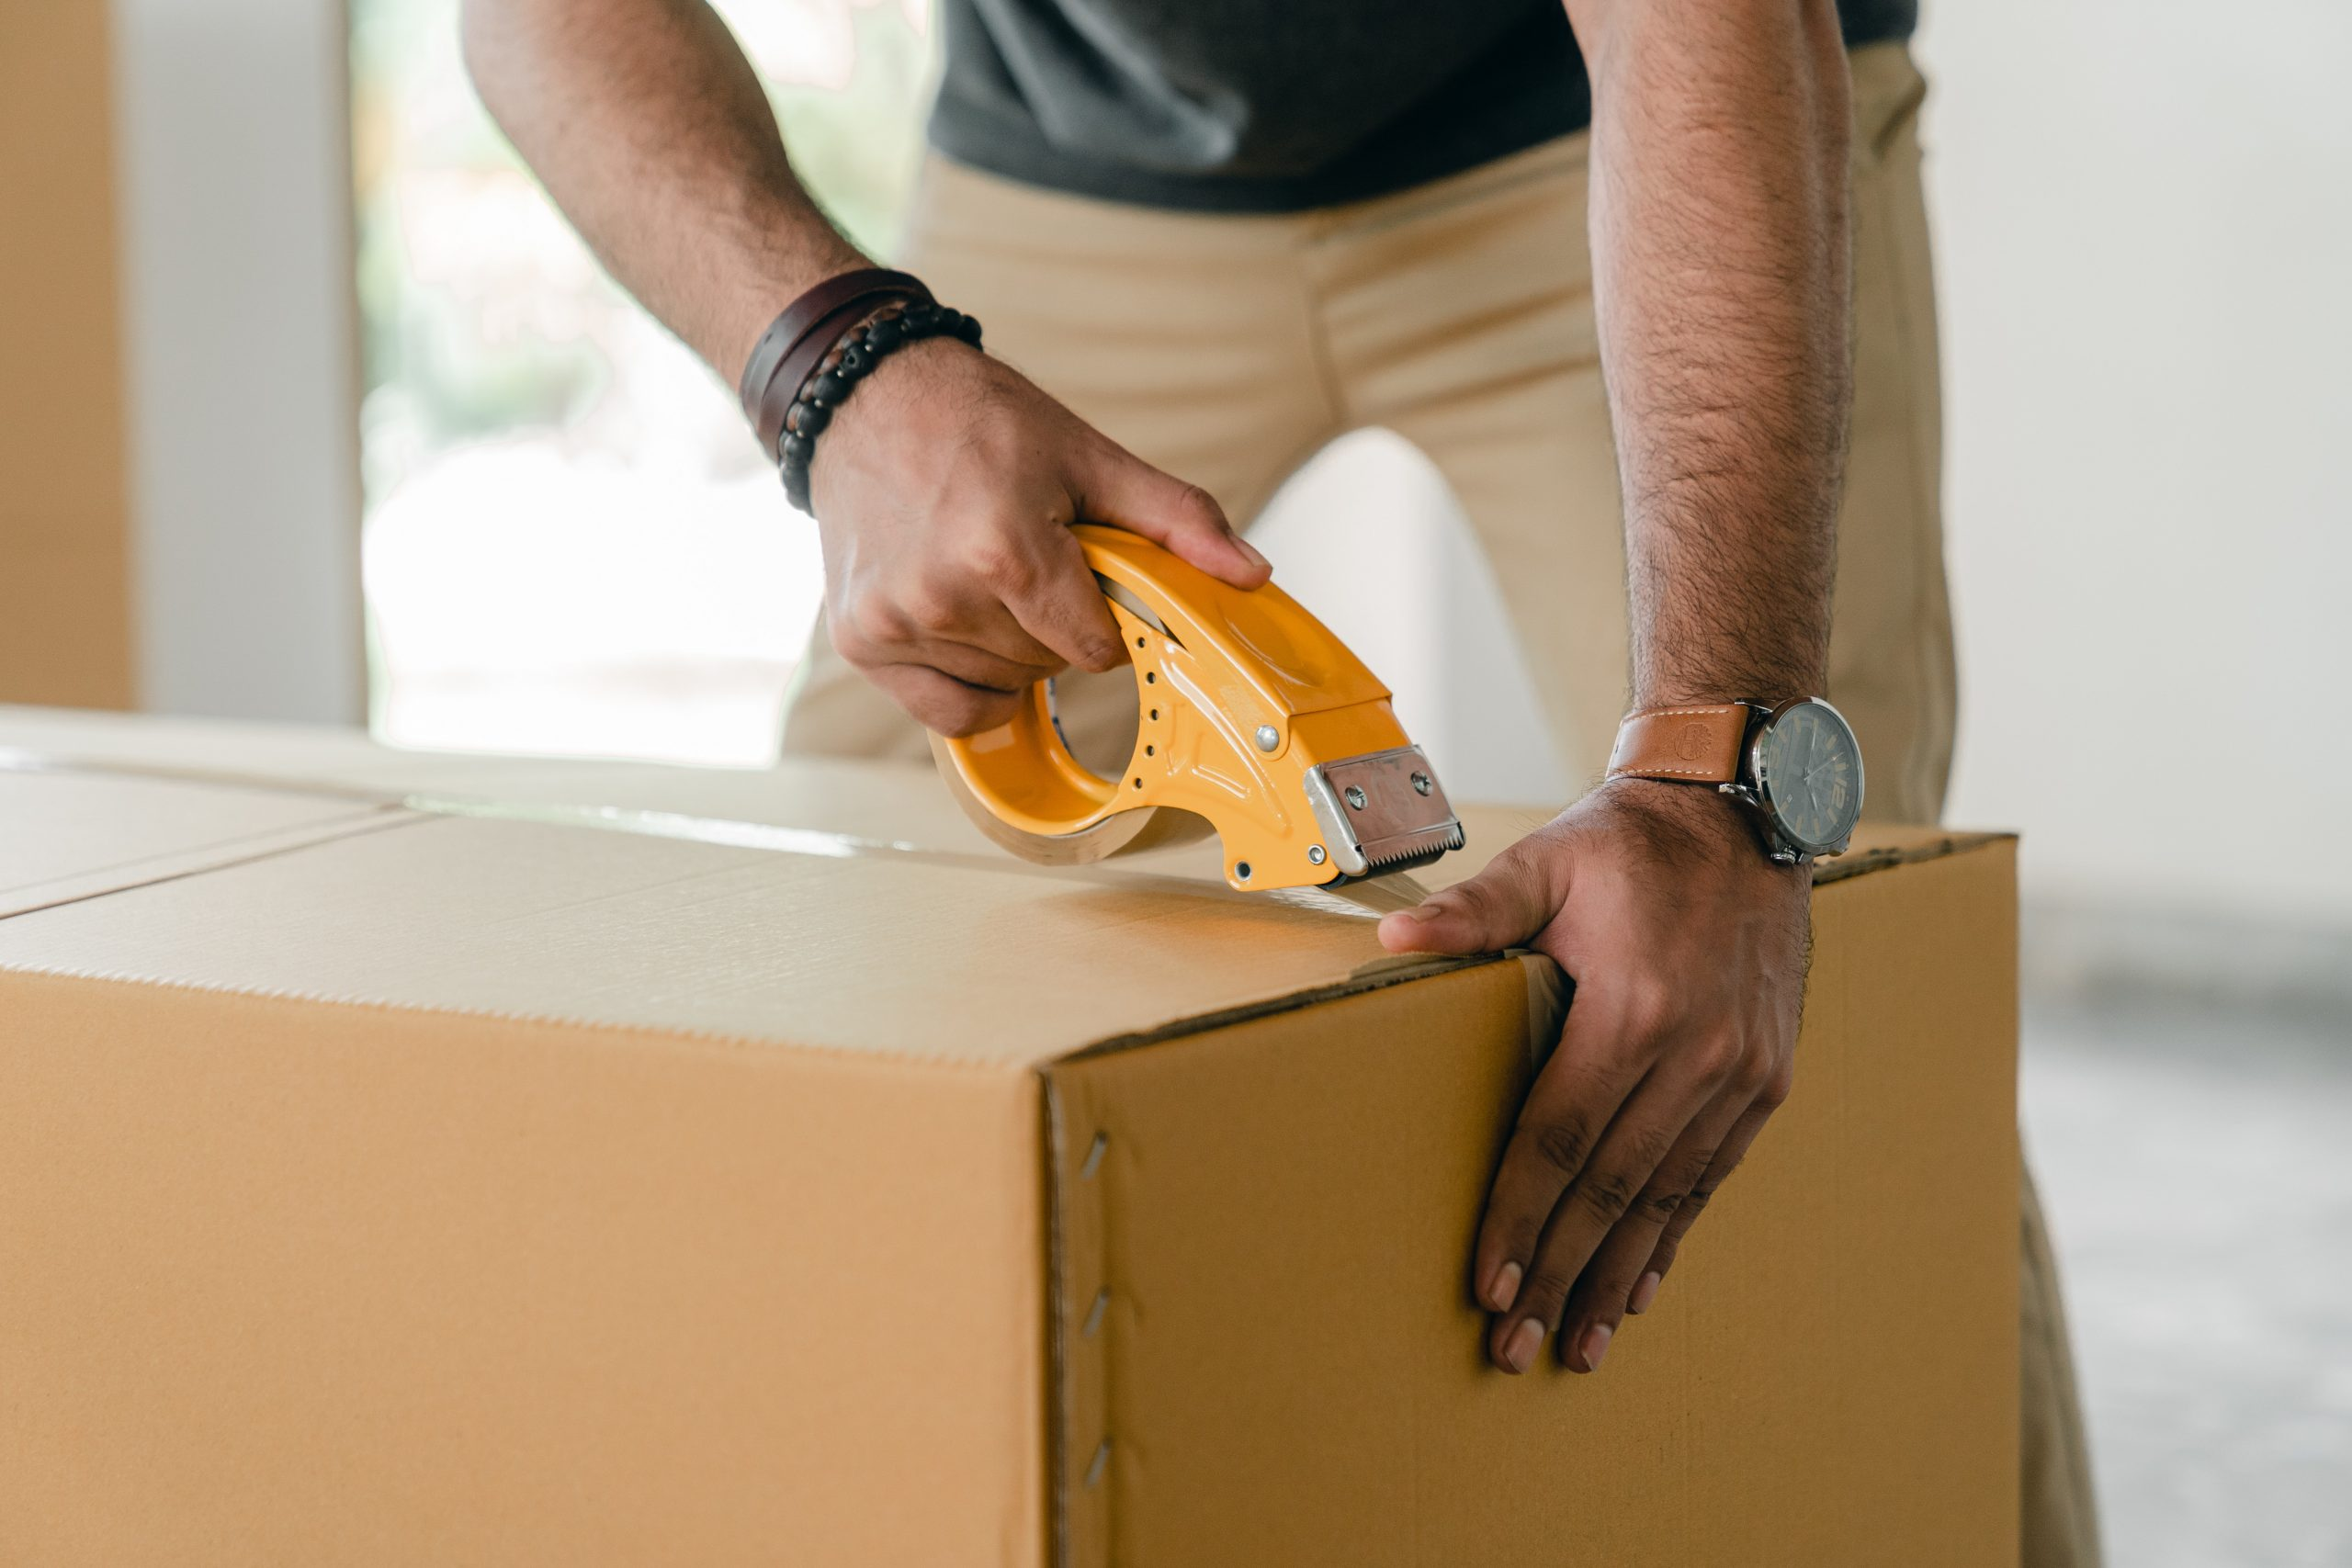 african american man using tape to close a cardboard box for moving